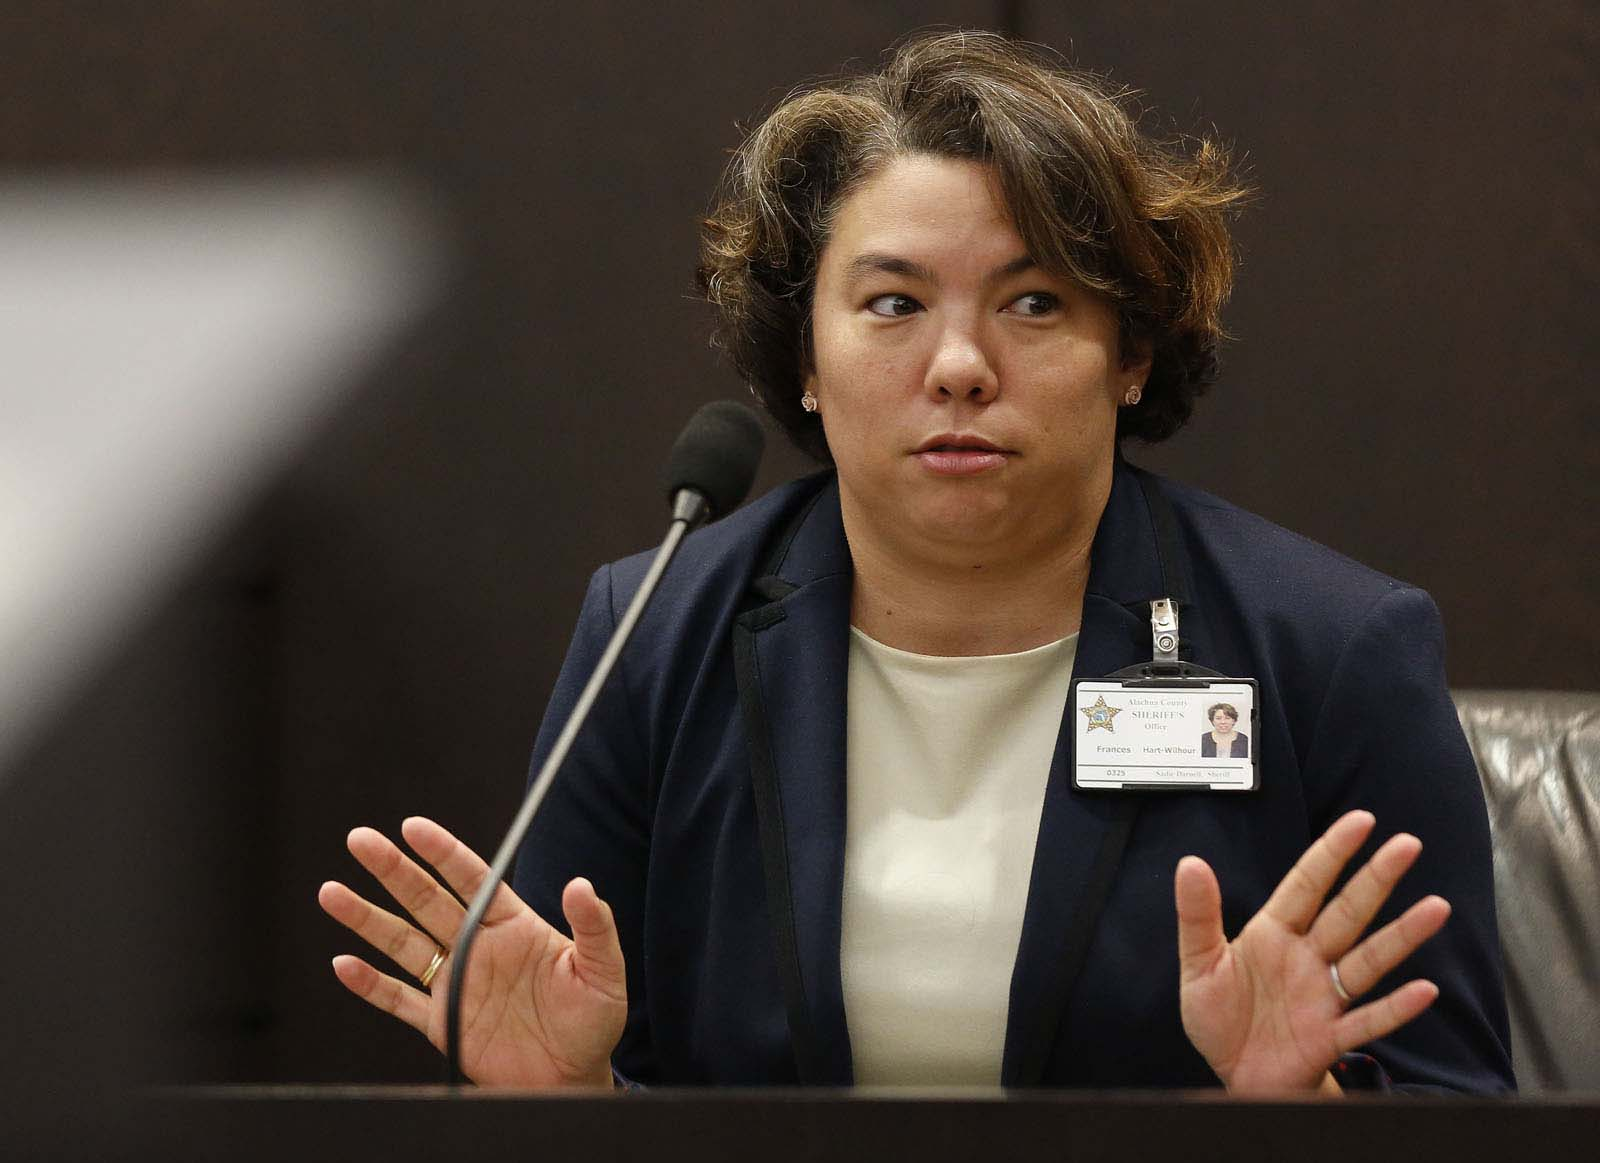 Frances Hart-Wilhour, with the Alachua County Department of the Jail, testifies during Pedro Bravo's murder trial in courtroom 1B of the Alachua County Criminal Justice Center Wednesday, August 13, 2014.  Bravo is accused of killing University of Florida student Christian Aguilar.  (Doug Finger/The Gainesville Sun/Pool)